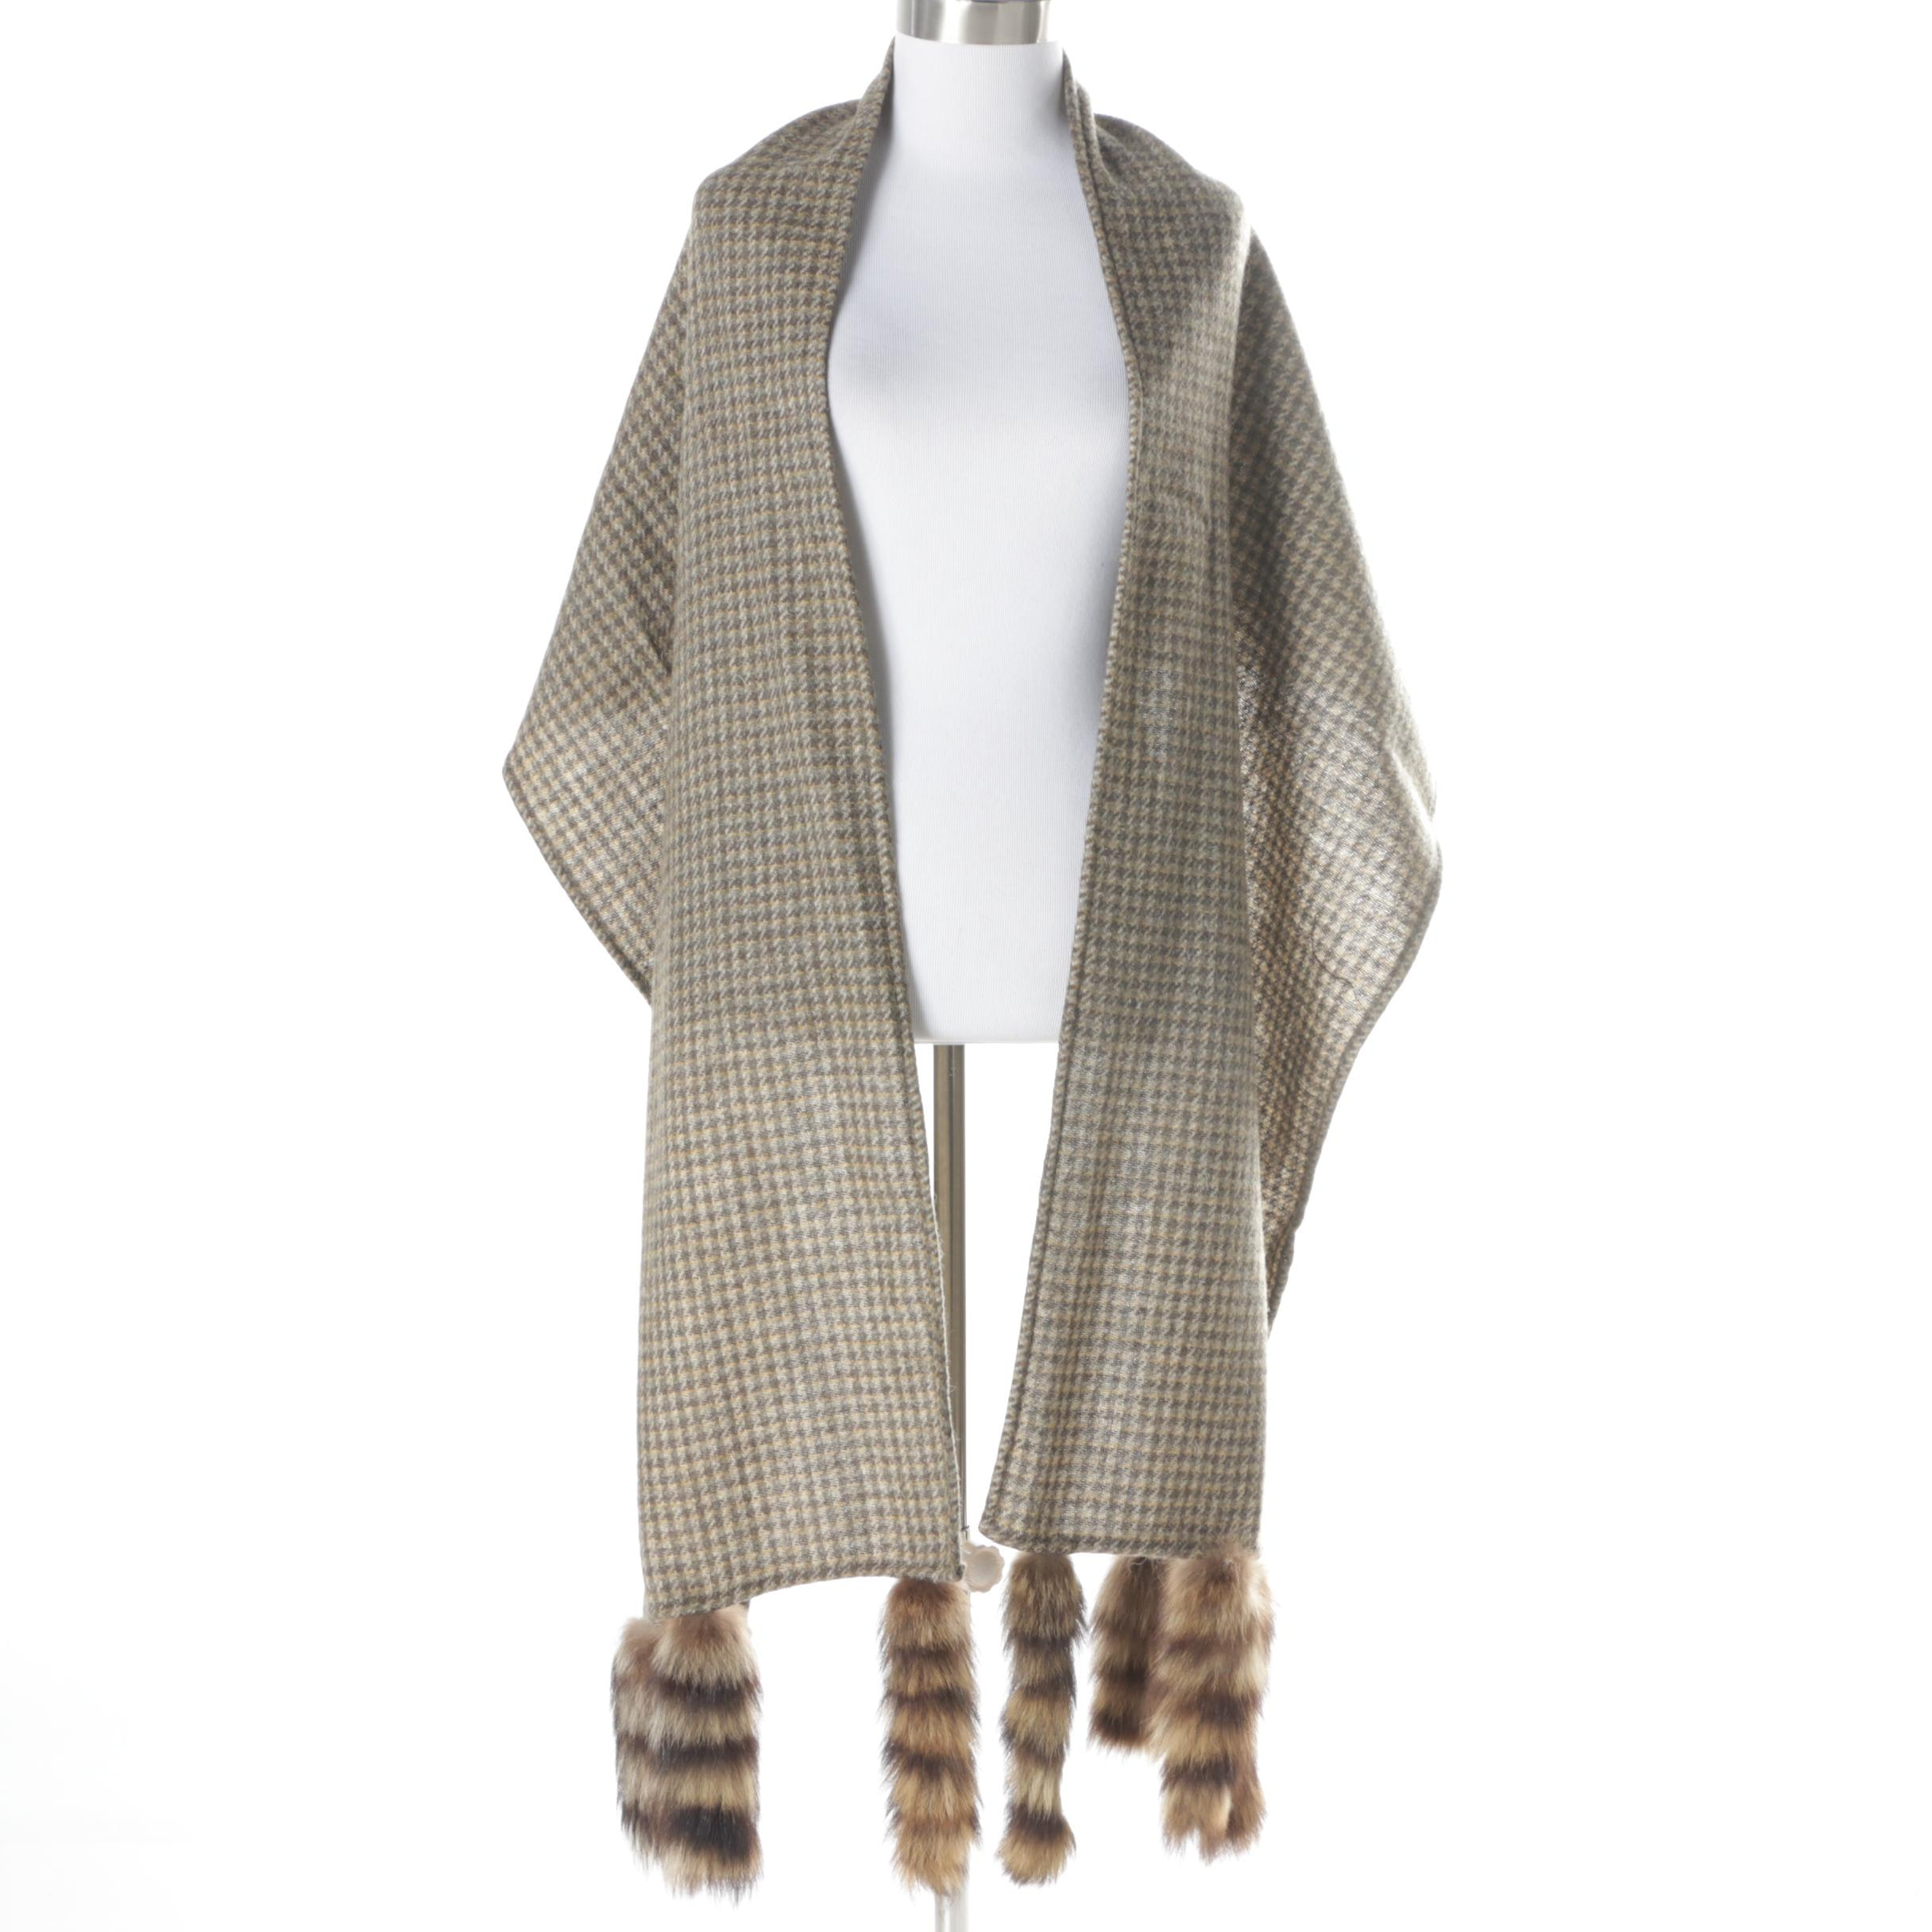 Wool Plaid Wrap with Raccoon Fur Accents